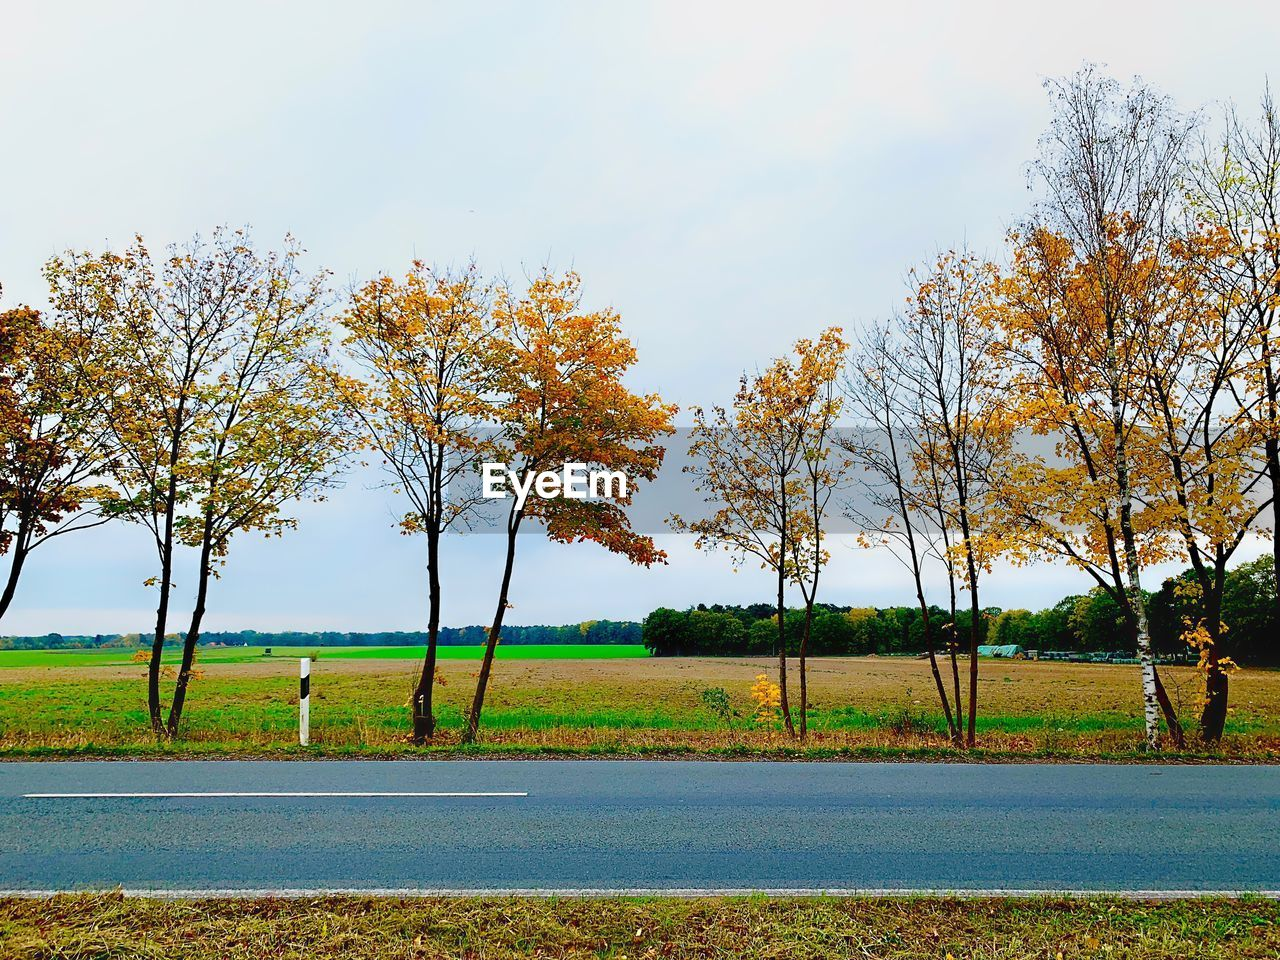 tree, plant, beauty in nature, sky, tranquility, landscape, tranquil scene, scenics - nature, environment, growth, nature, land, field, day, autumn, no people, grass, outdoors, road, rural scene, change